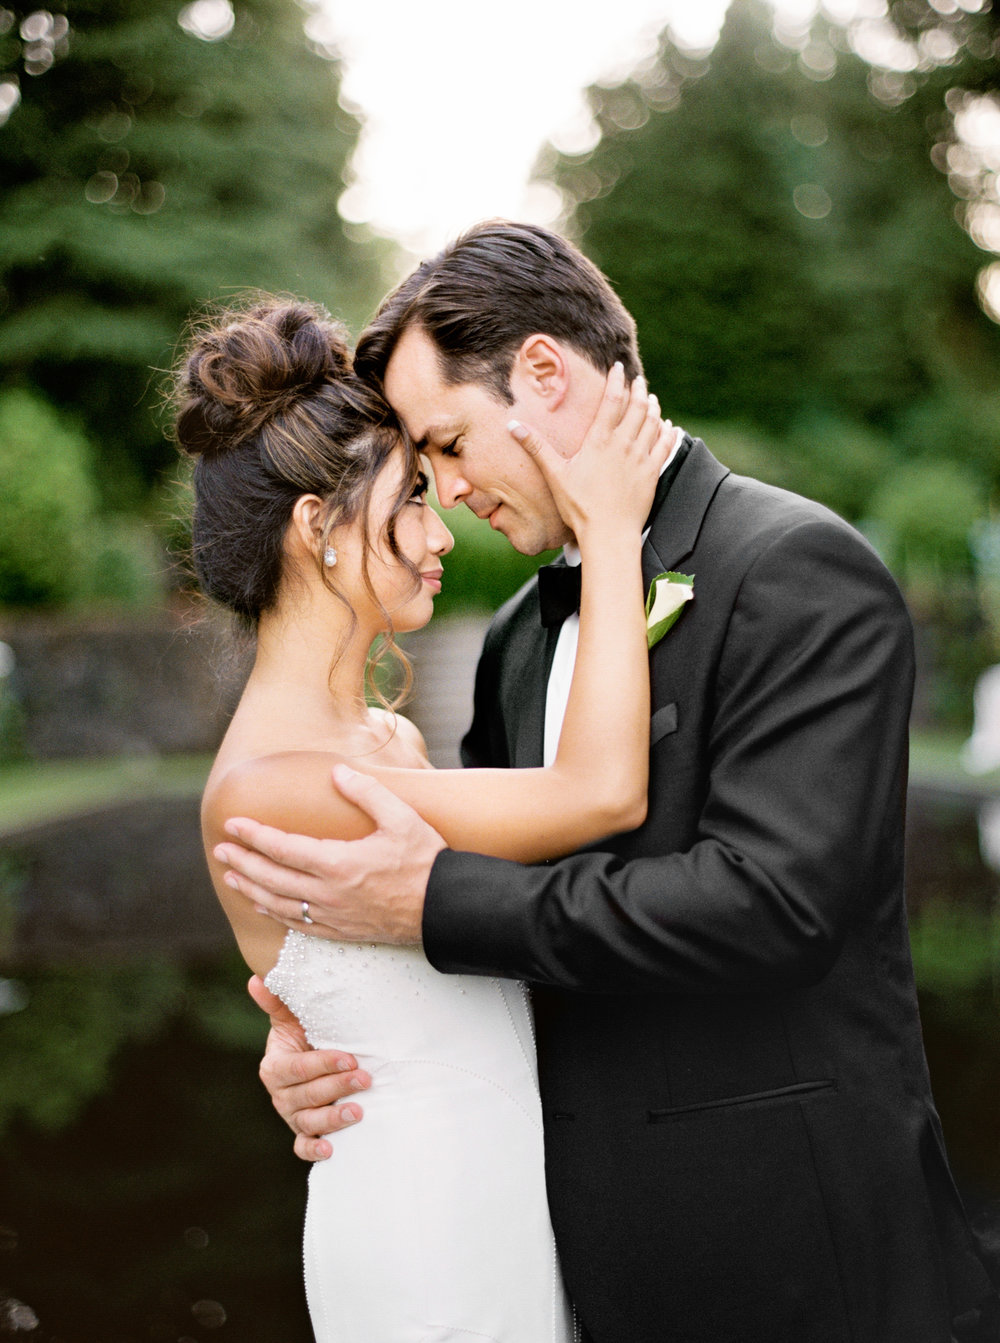 080OutliveCreative_Travel_Photographer_Videographer_Lewis&Clark_Oregon_Elegant_BlackTie_Destination_Wedding.jpg